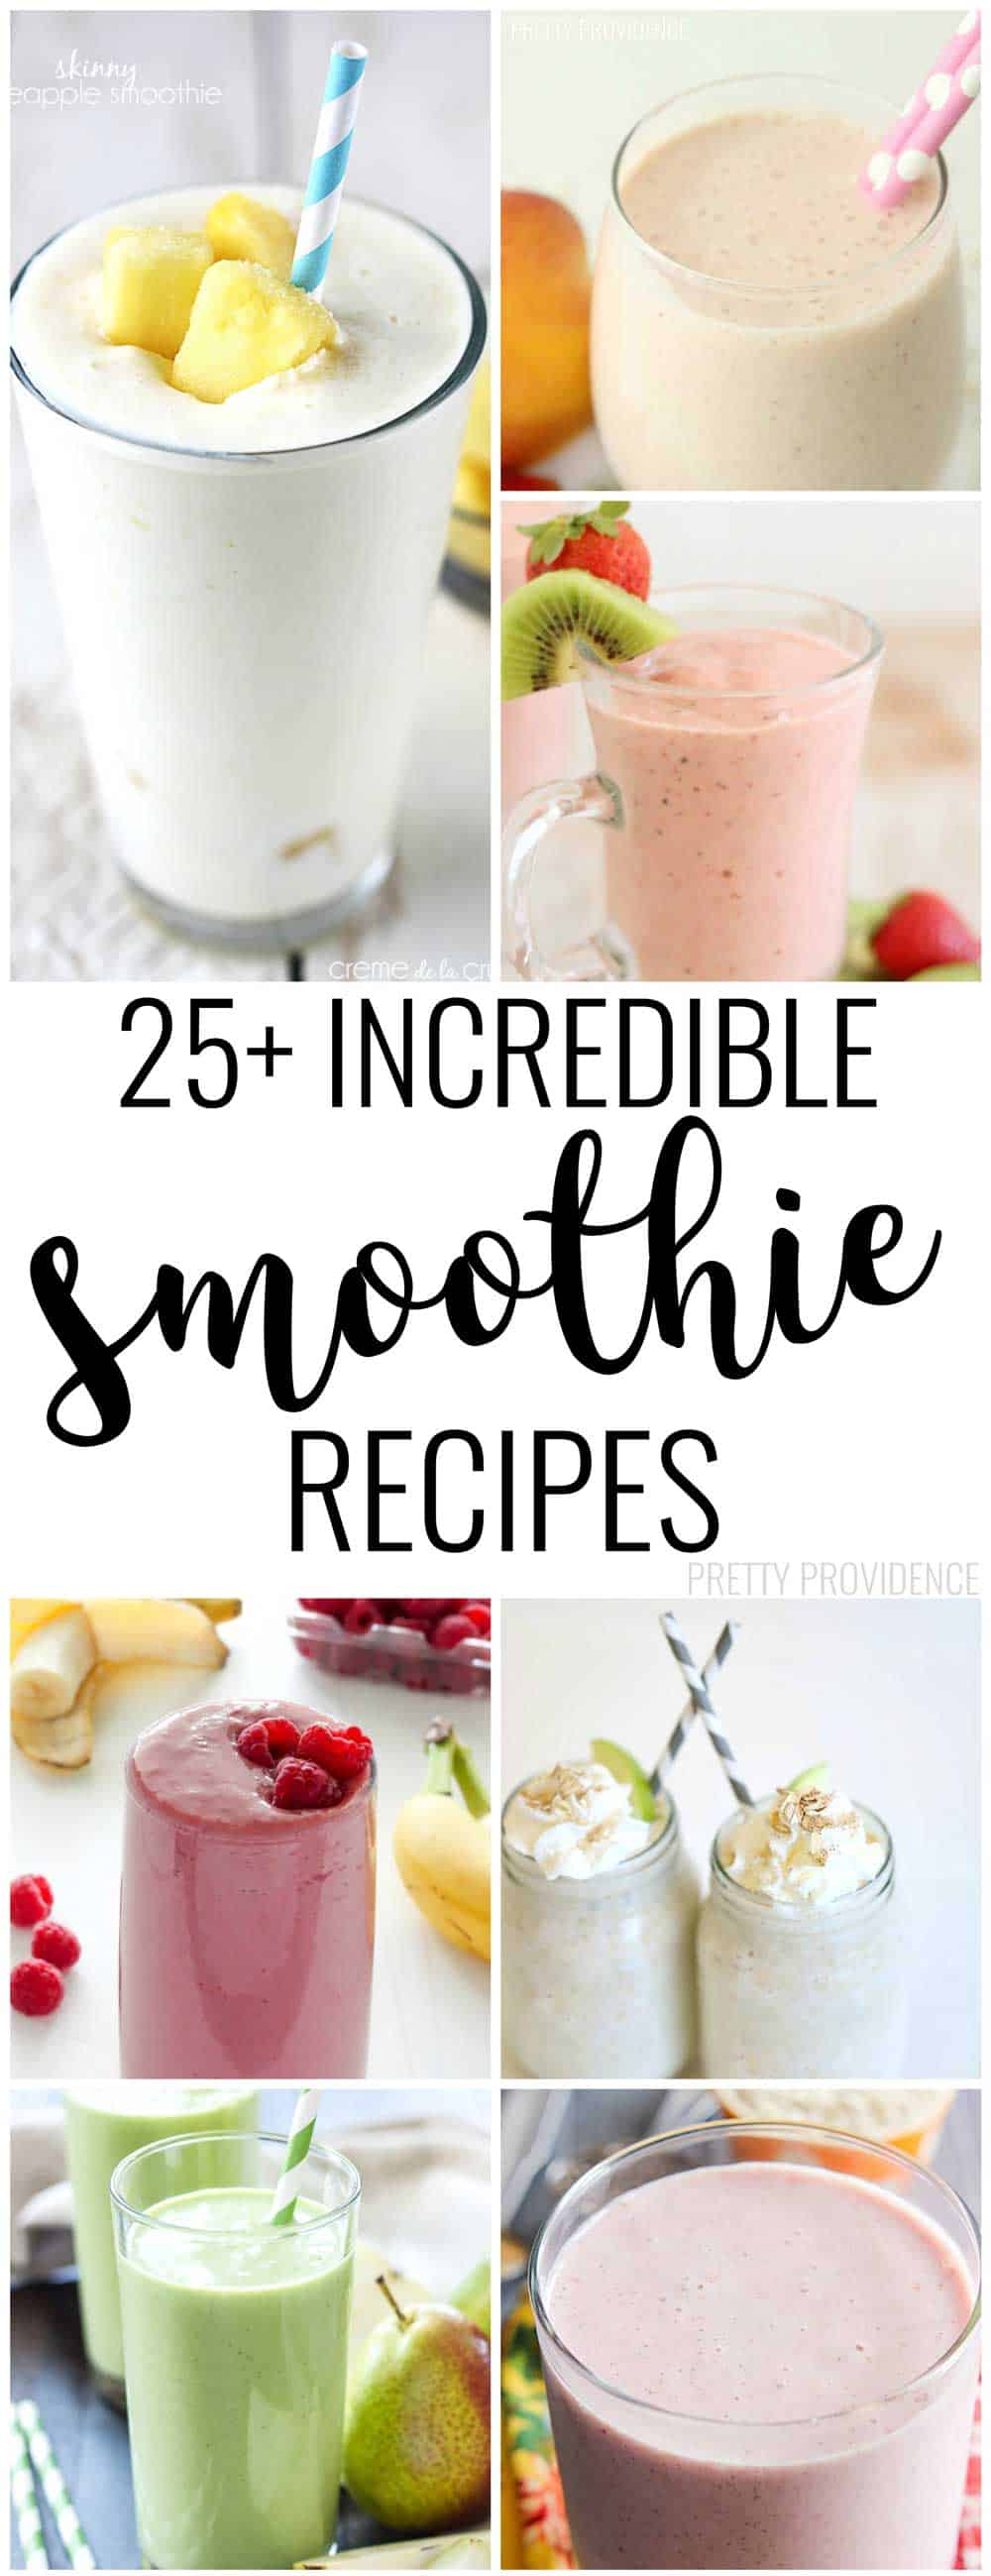 There are some AMAZING smoothie recipes in here! Strawberry, peach, oatmeal, pear or blueberry smoothies - you name it, I've found one for you!